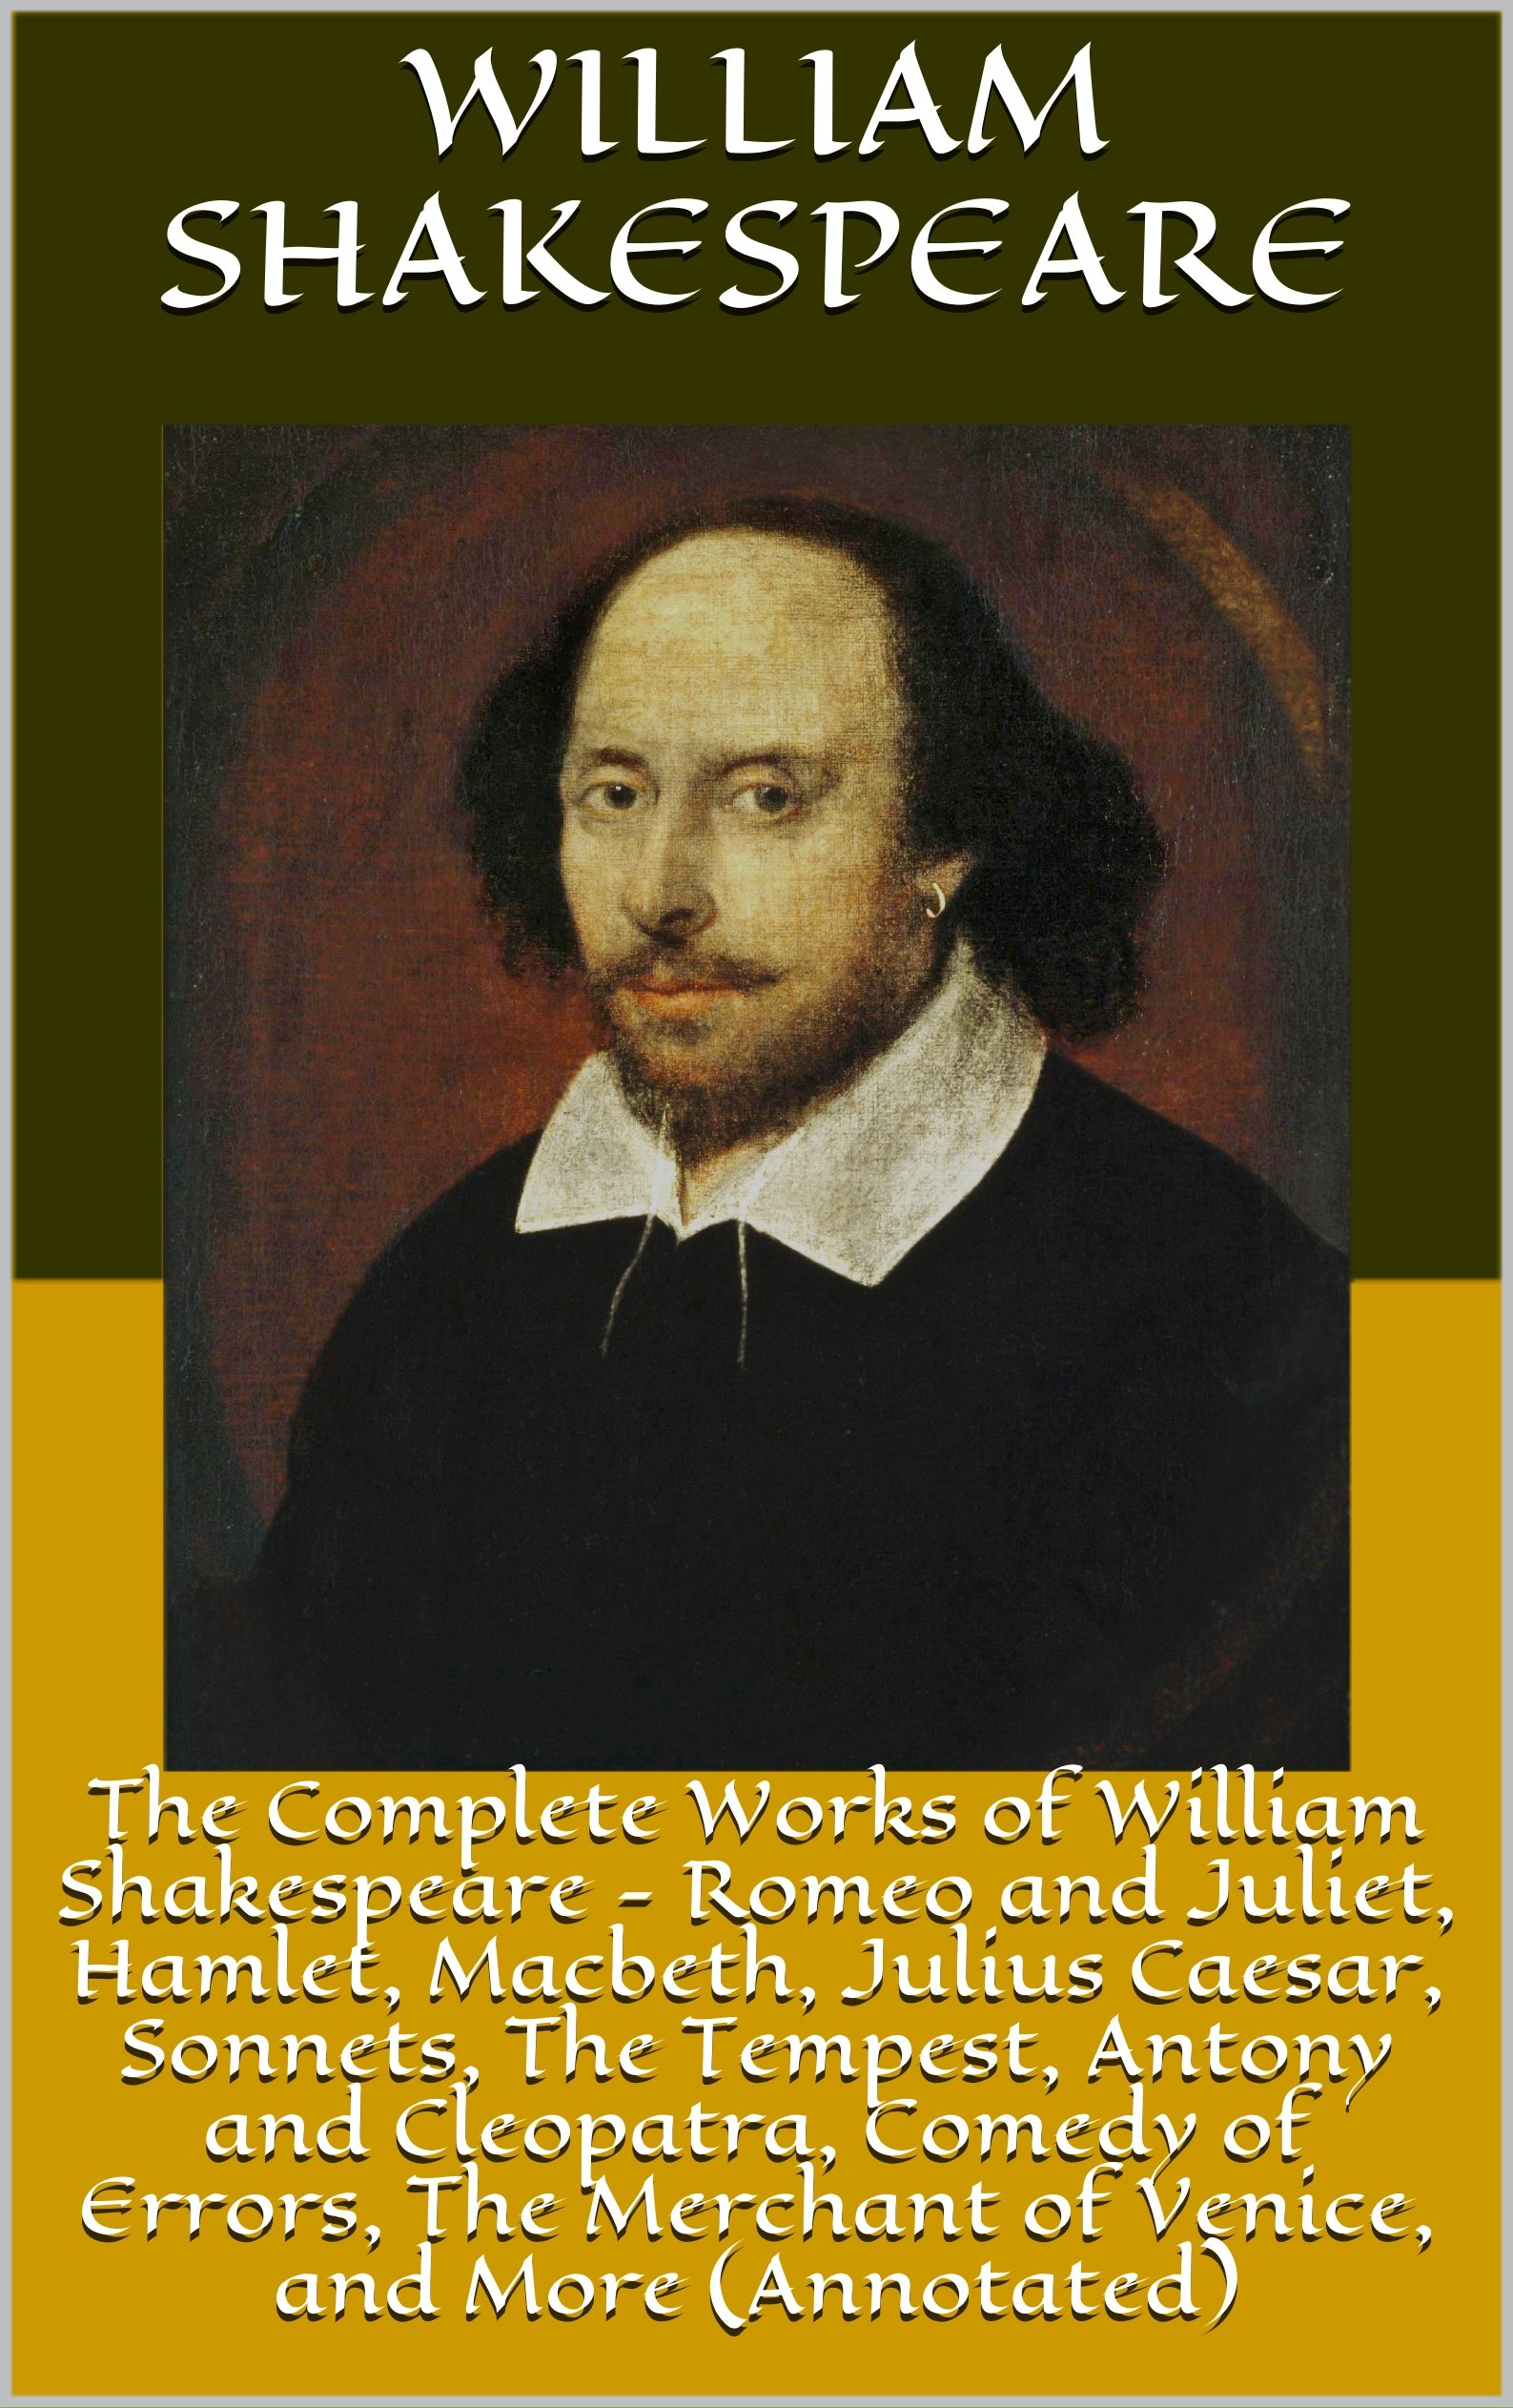 The Complete Works of William Shakespeare - Romeo and Juliet Hamlet Macbeth Julius Caesar Sonnets The Tempest Antony and Cleopatra Comedy of Errors ... and More (Annotated) (English Edition)